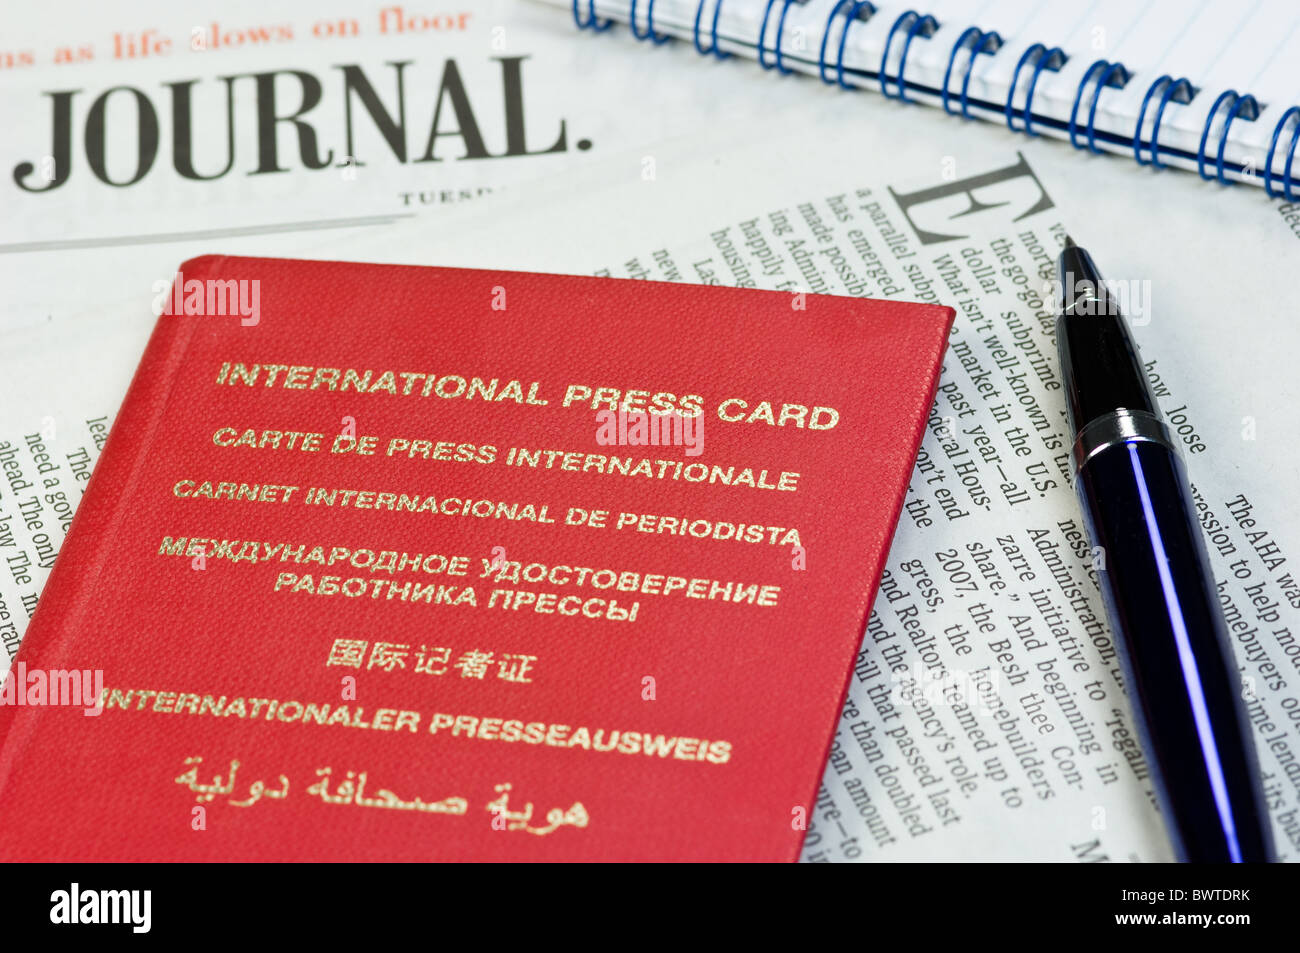 International press card - Stock Image